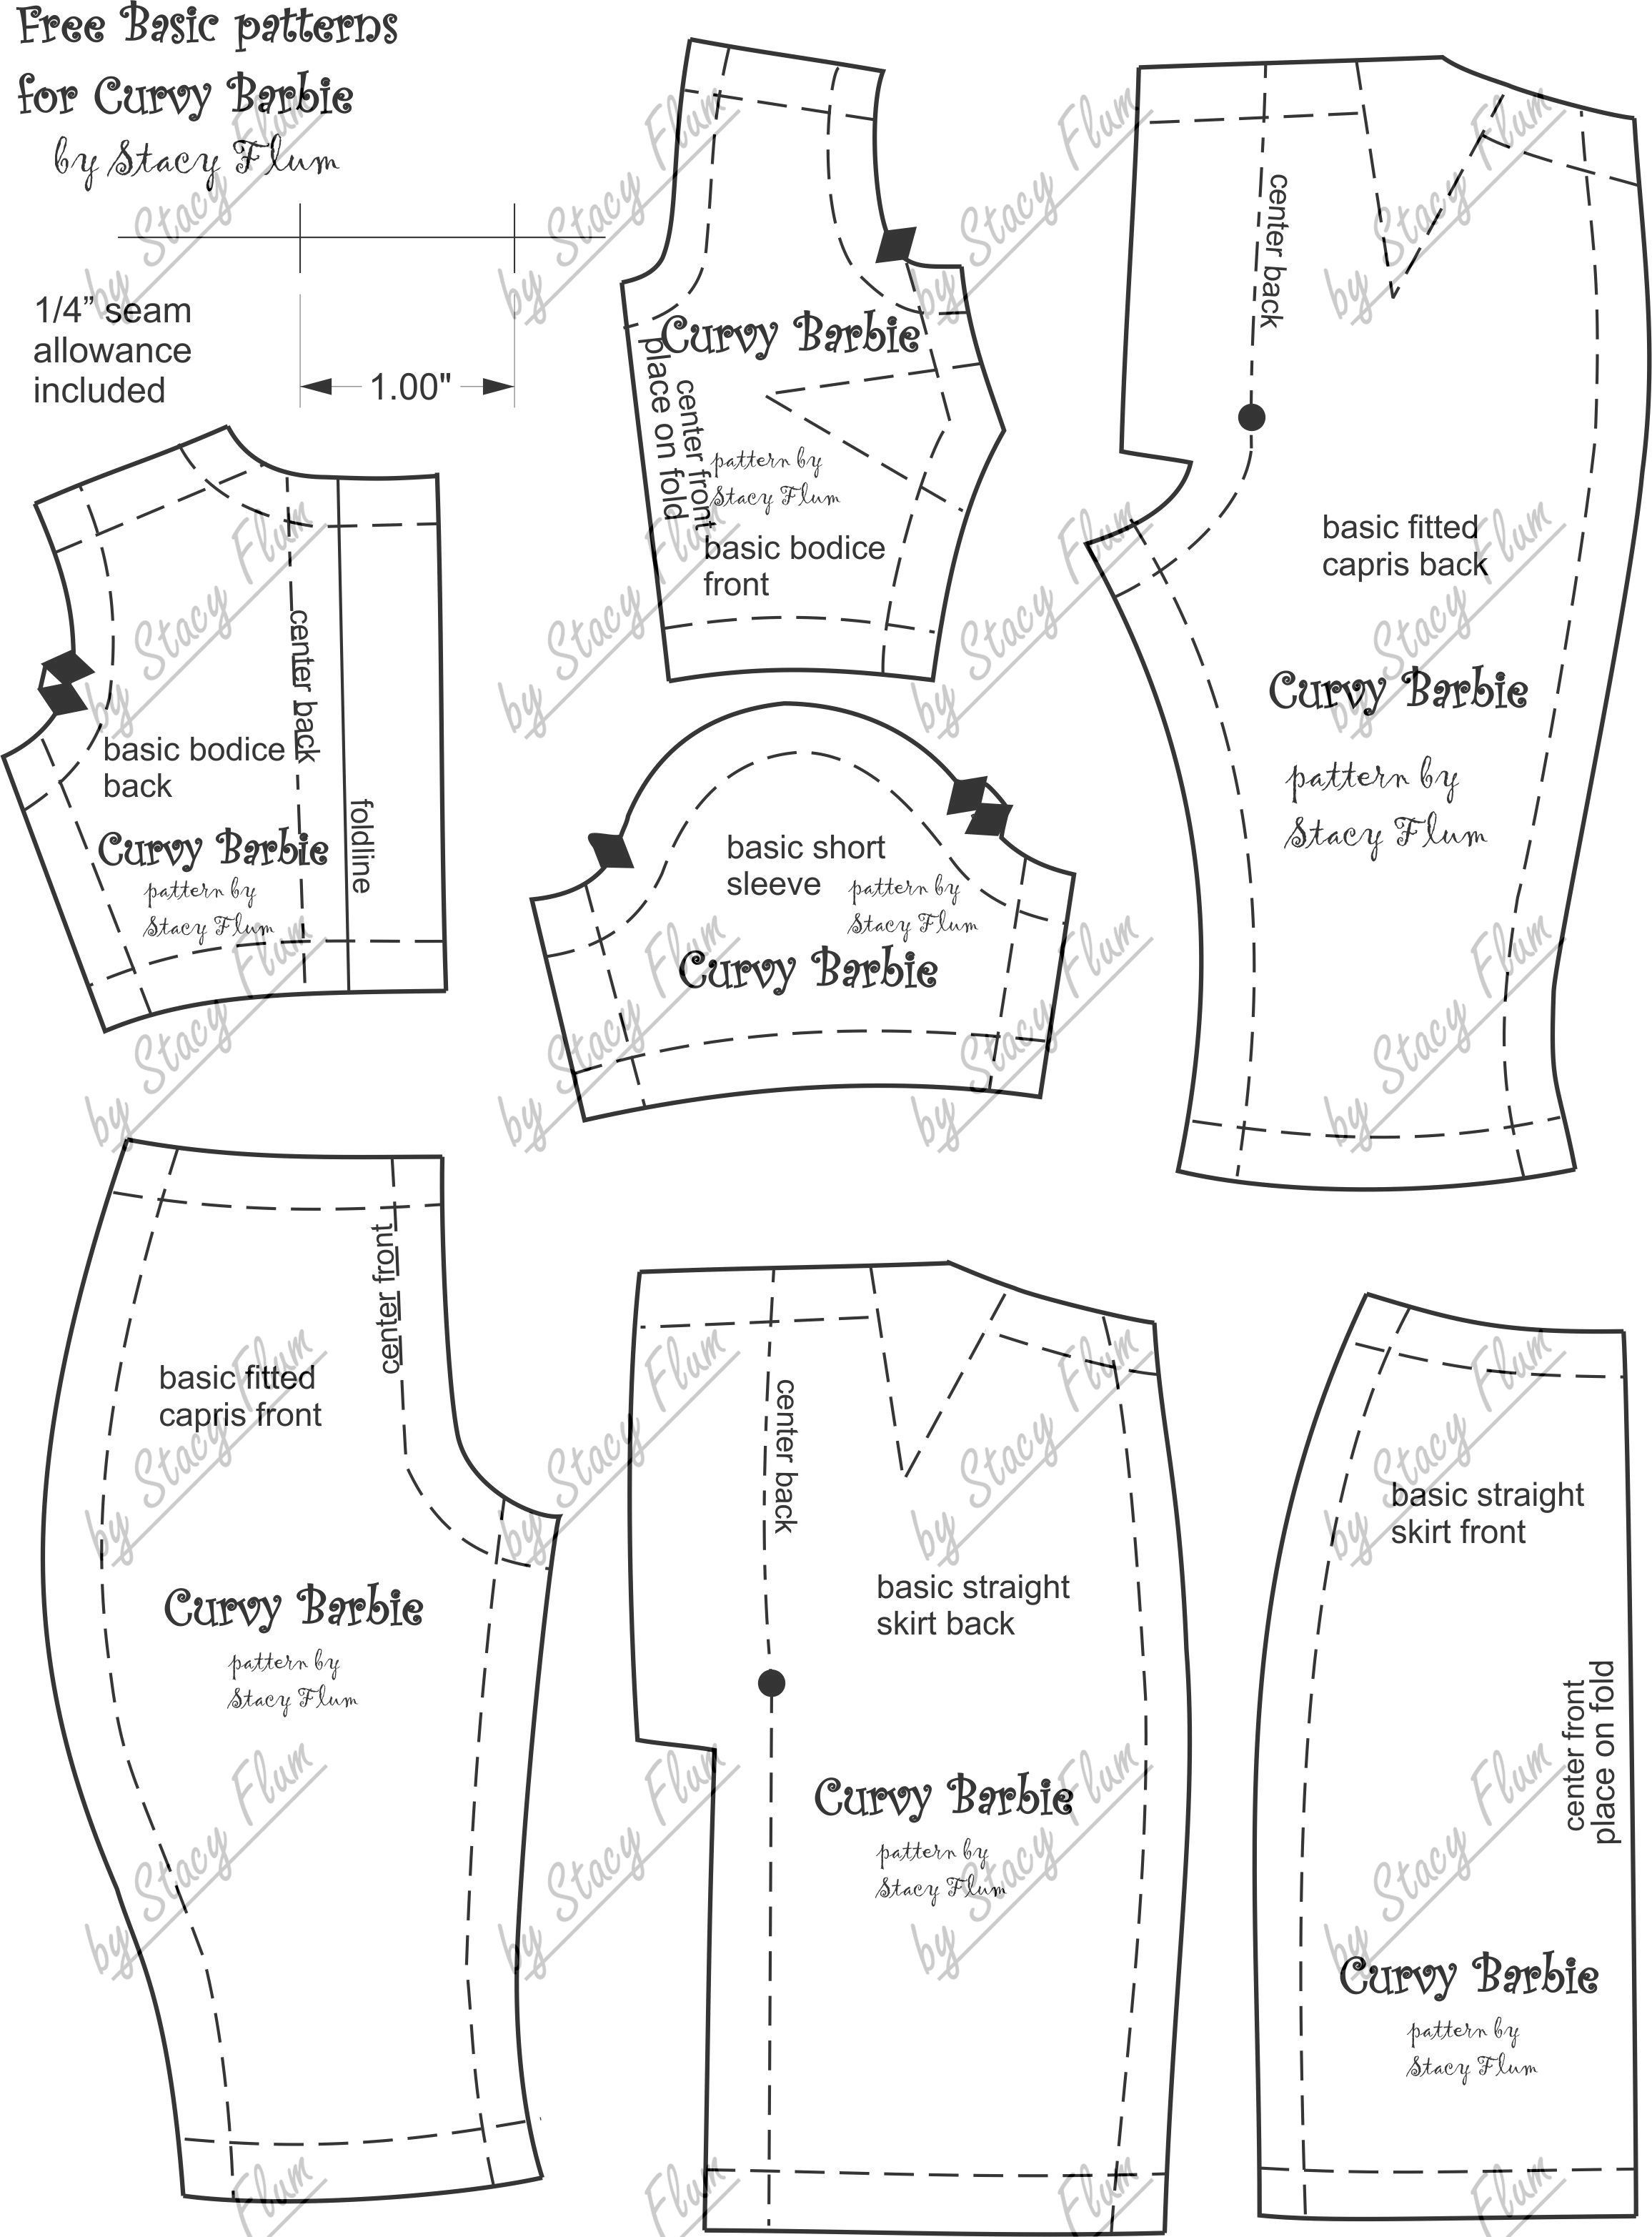 Easy Barbie Clothes Patterns : barbie, clothes, patterns, Pattern, Curvy, Barbie., Barbie, Clothing, Patterns,, Clothes, Patterns, Free,, Sewing